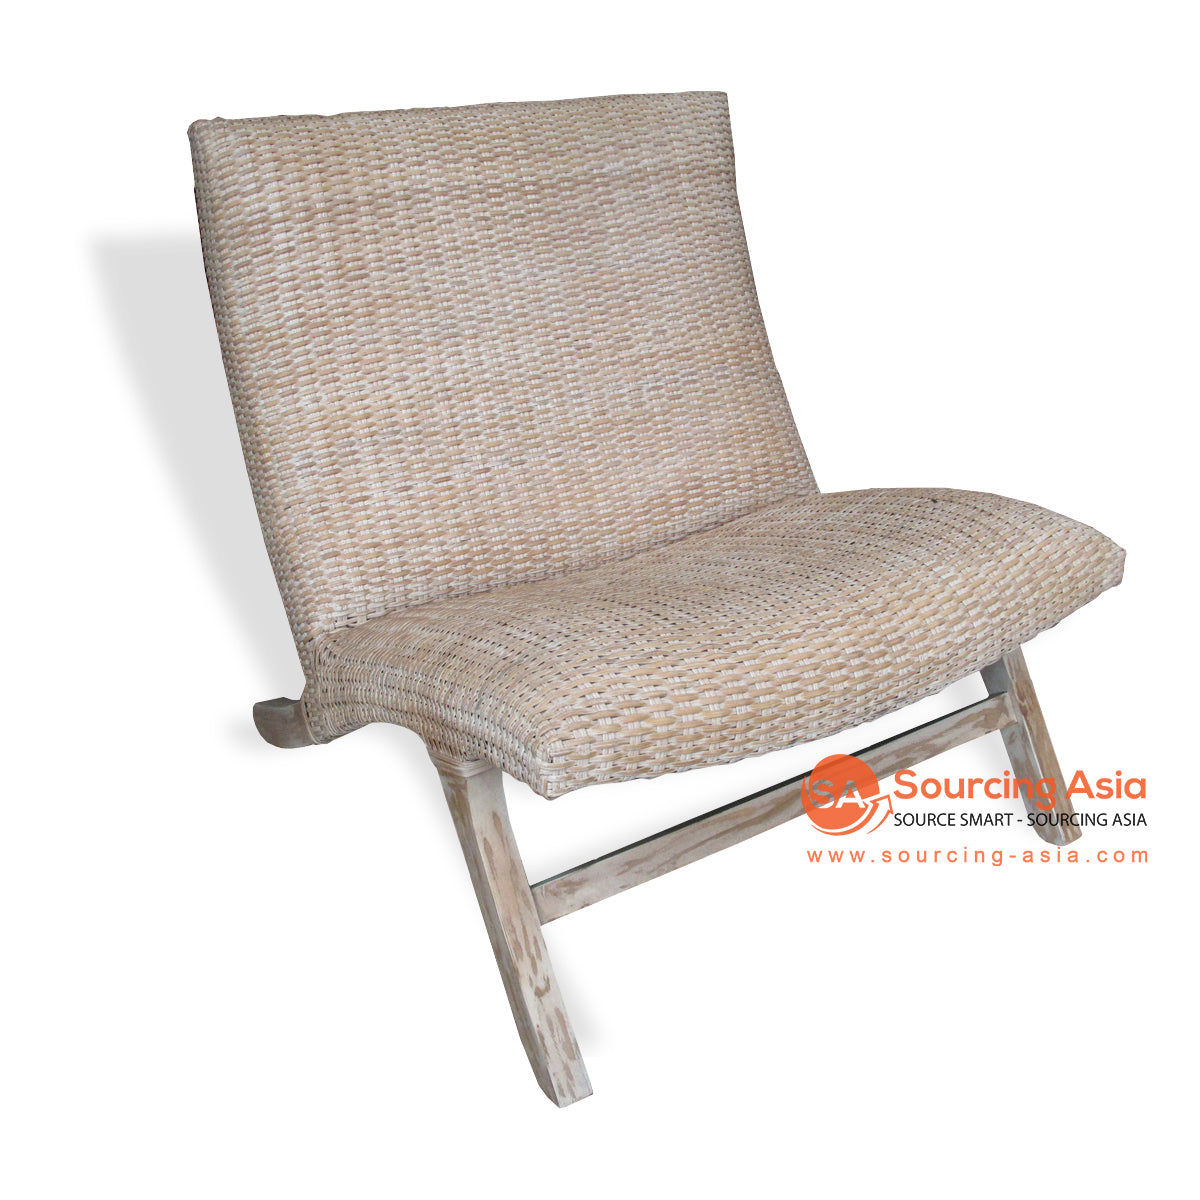 TRJ007 RATTAN LAZY CHAIR